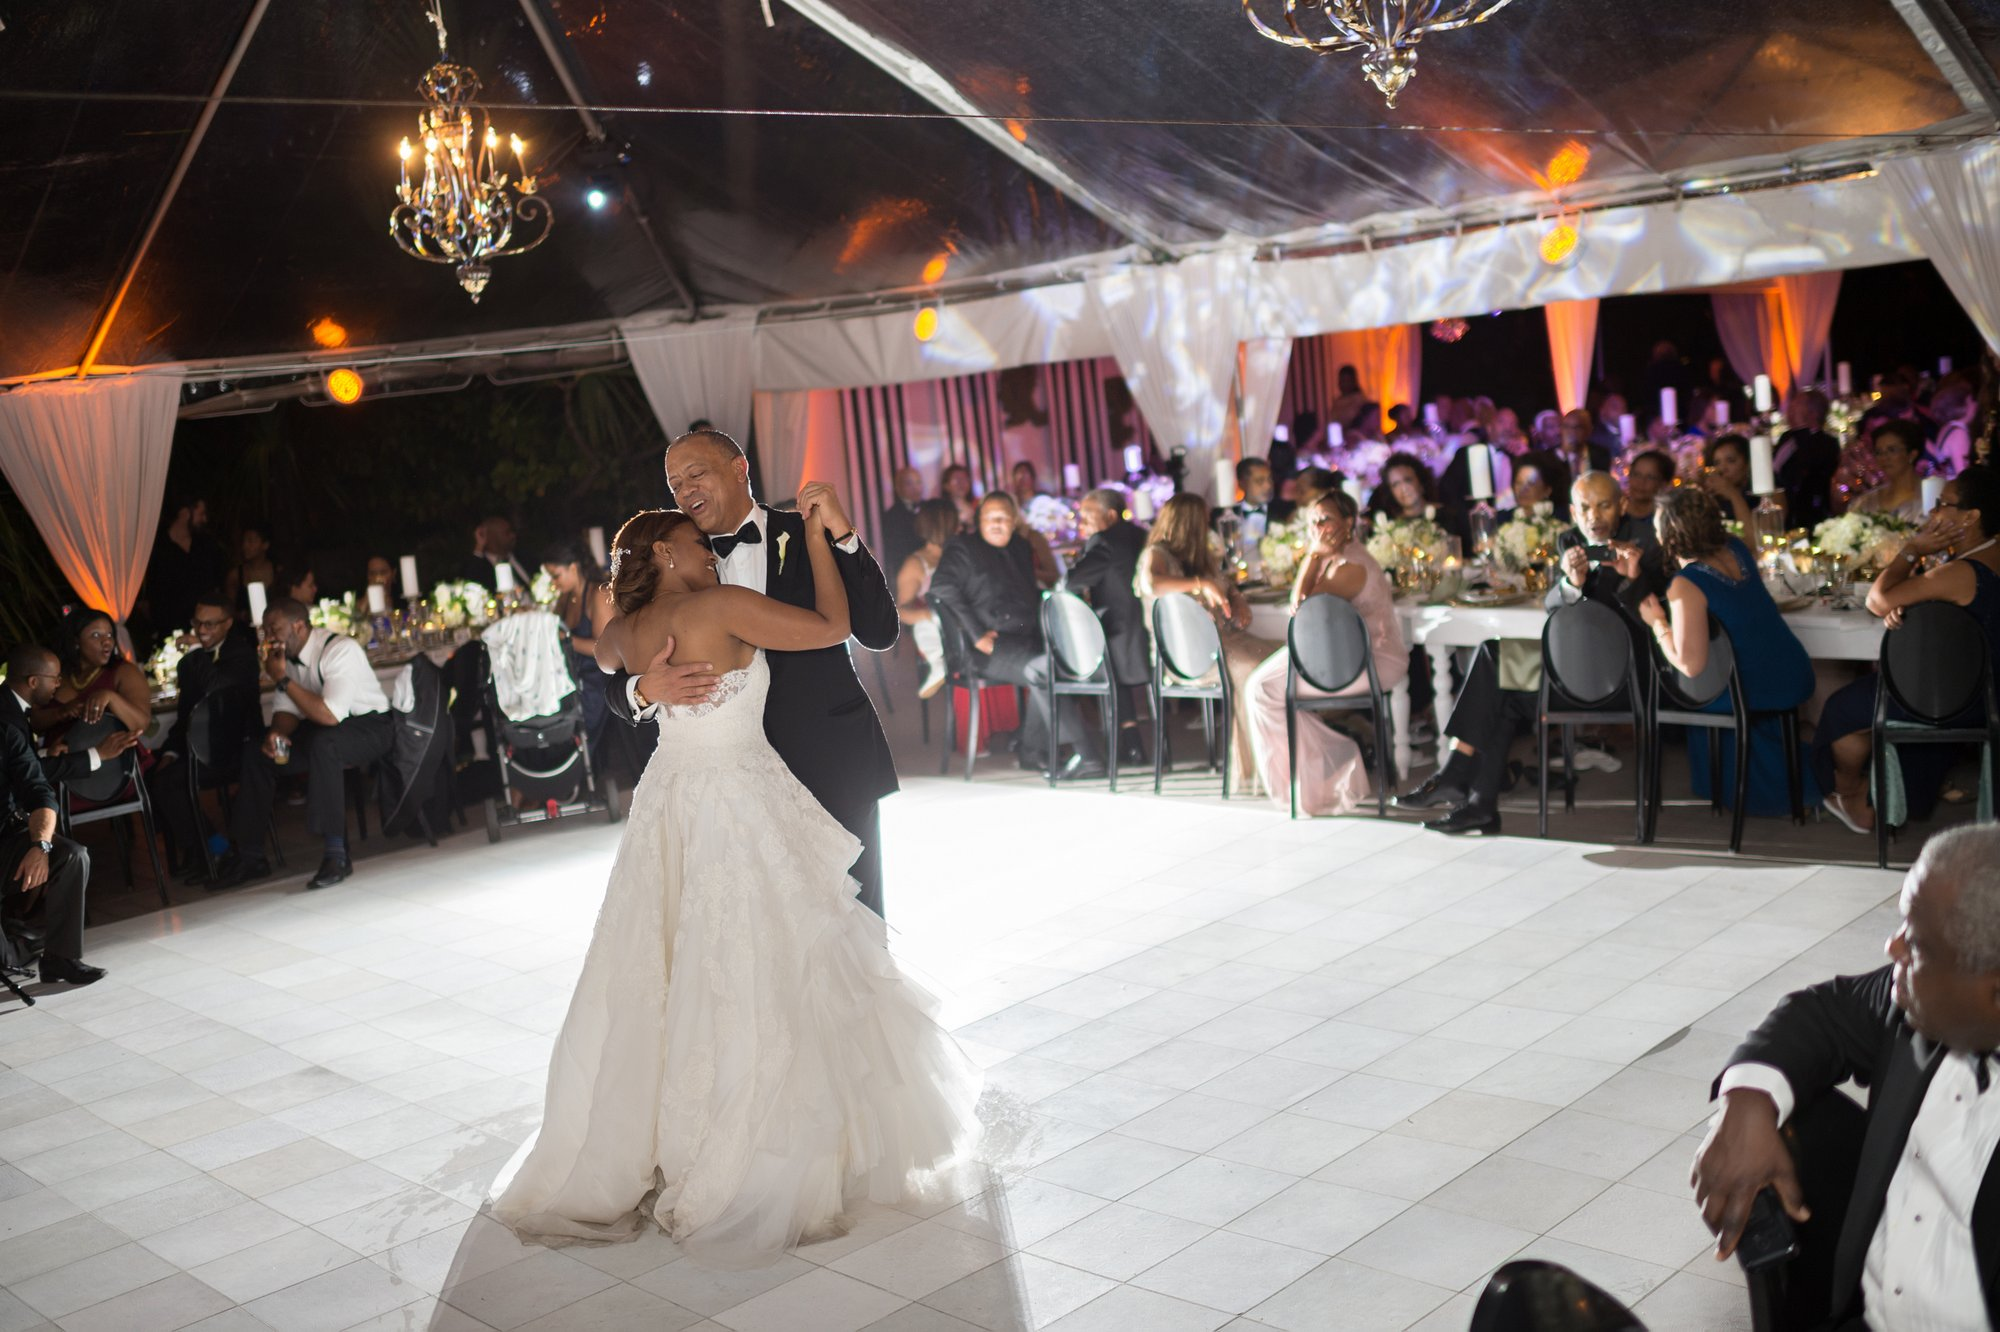 Best wedding venues in miami raleigh hotel